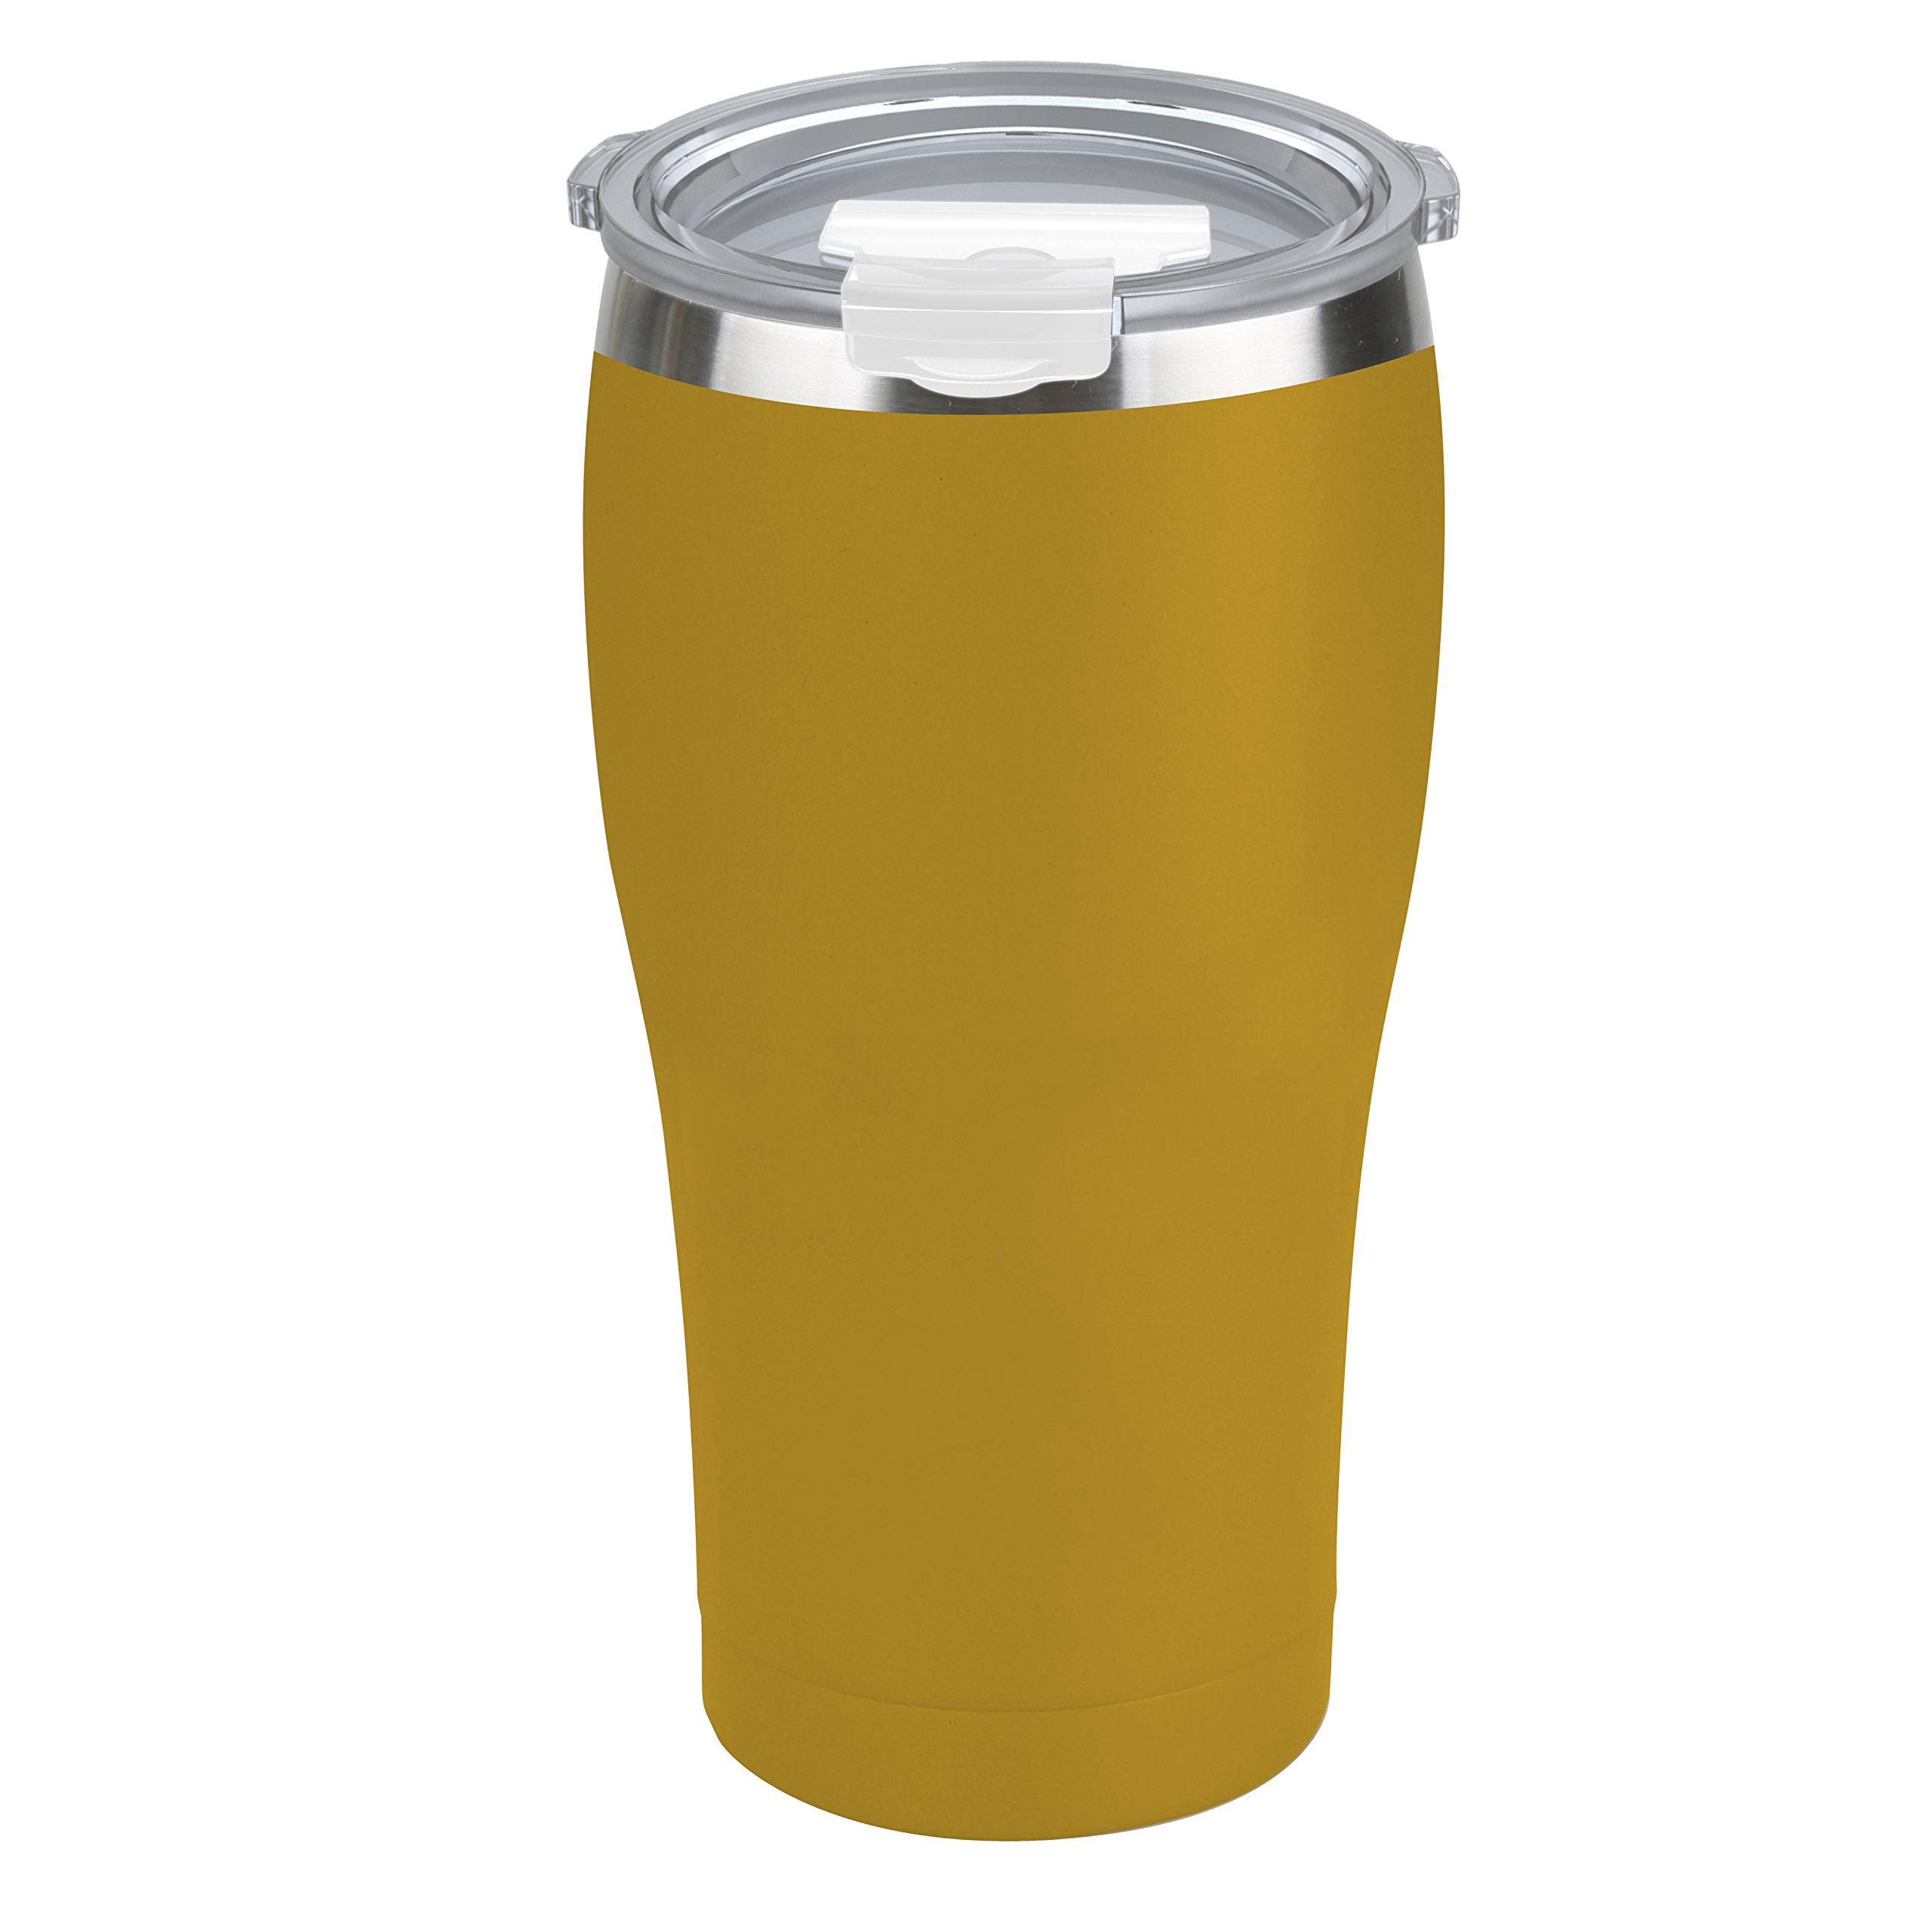 Tahoe Trails 16 oz Stainless Steel Tumbler Vacuum Insulated Double Wall Travel Cup With Lid, Cyber Yellow